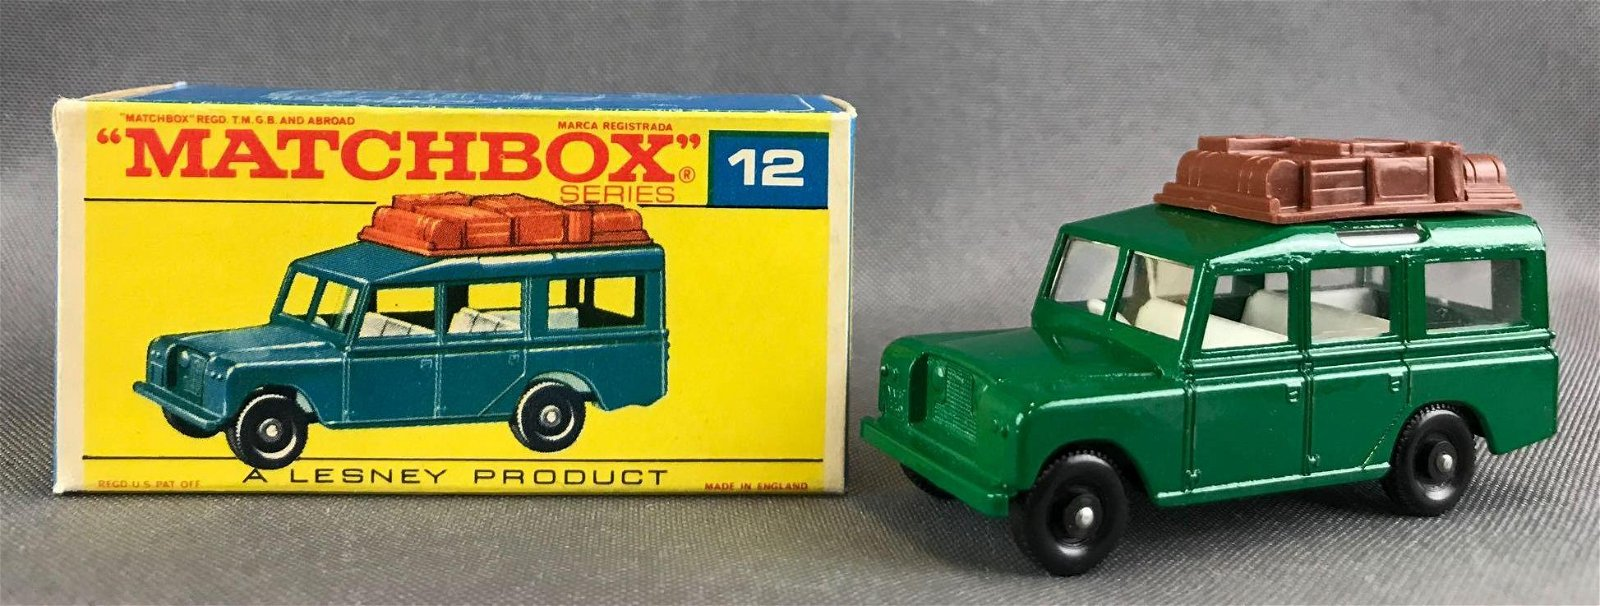 Matchbox No. 12 Safari Land Rover Die-Cast Vehicle with